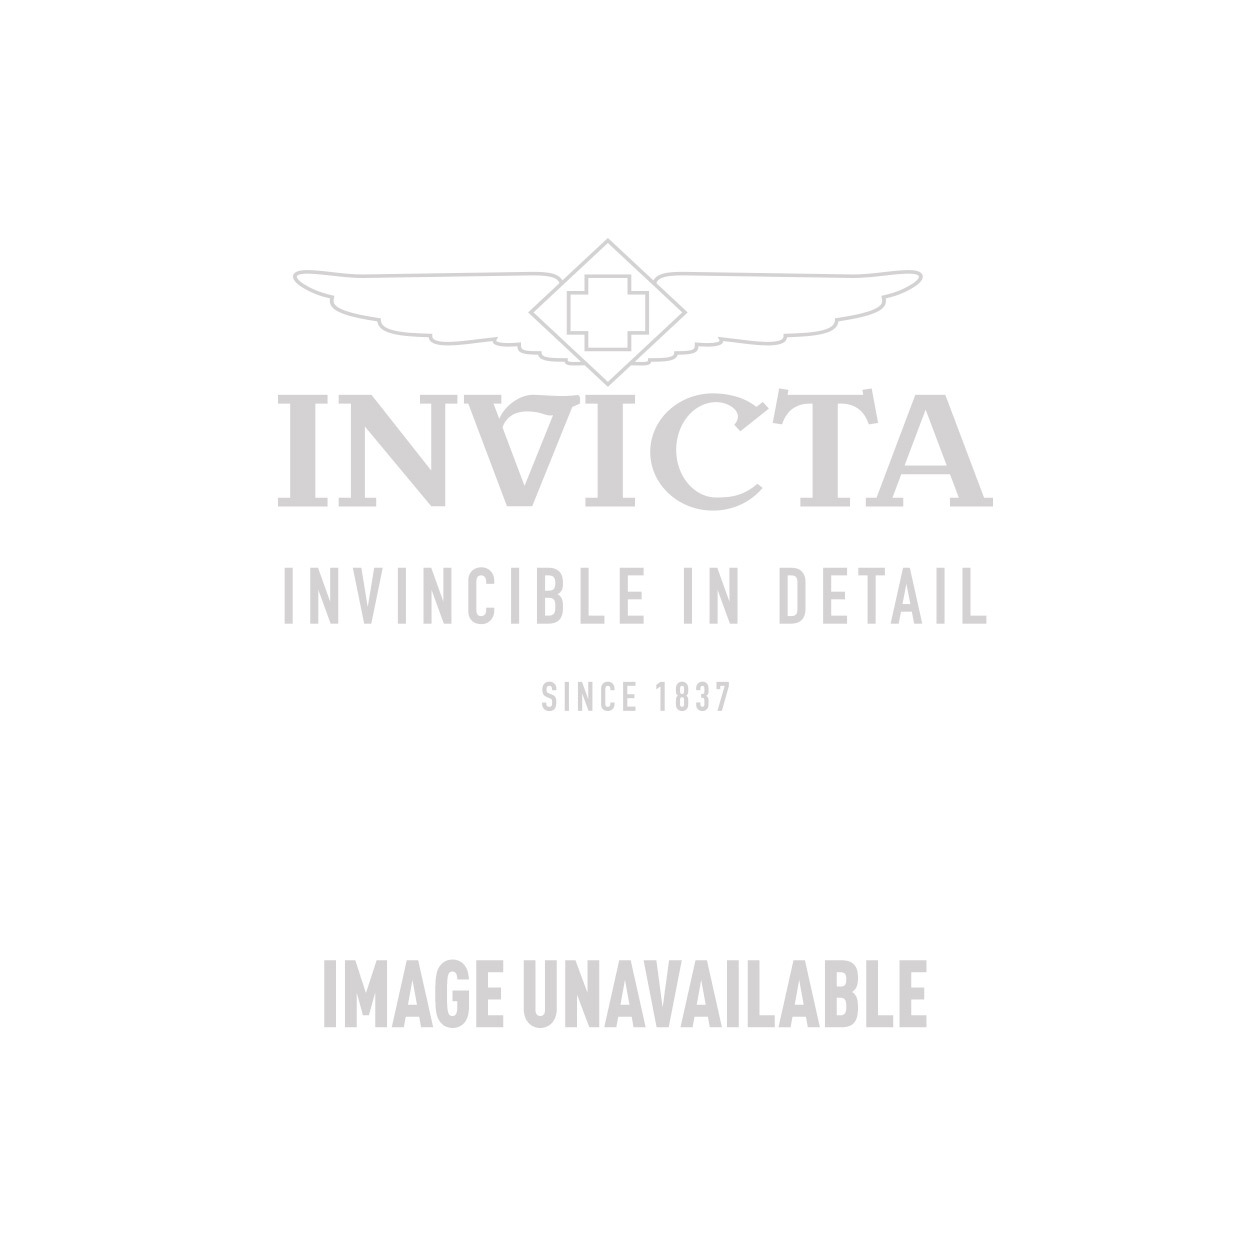 Invicta Specialty Swiss Movement Quartz Watch - Stainless Steel case Stainless Steel band - Model 15118